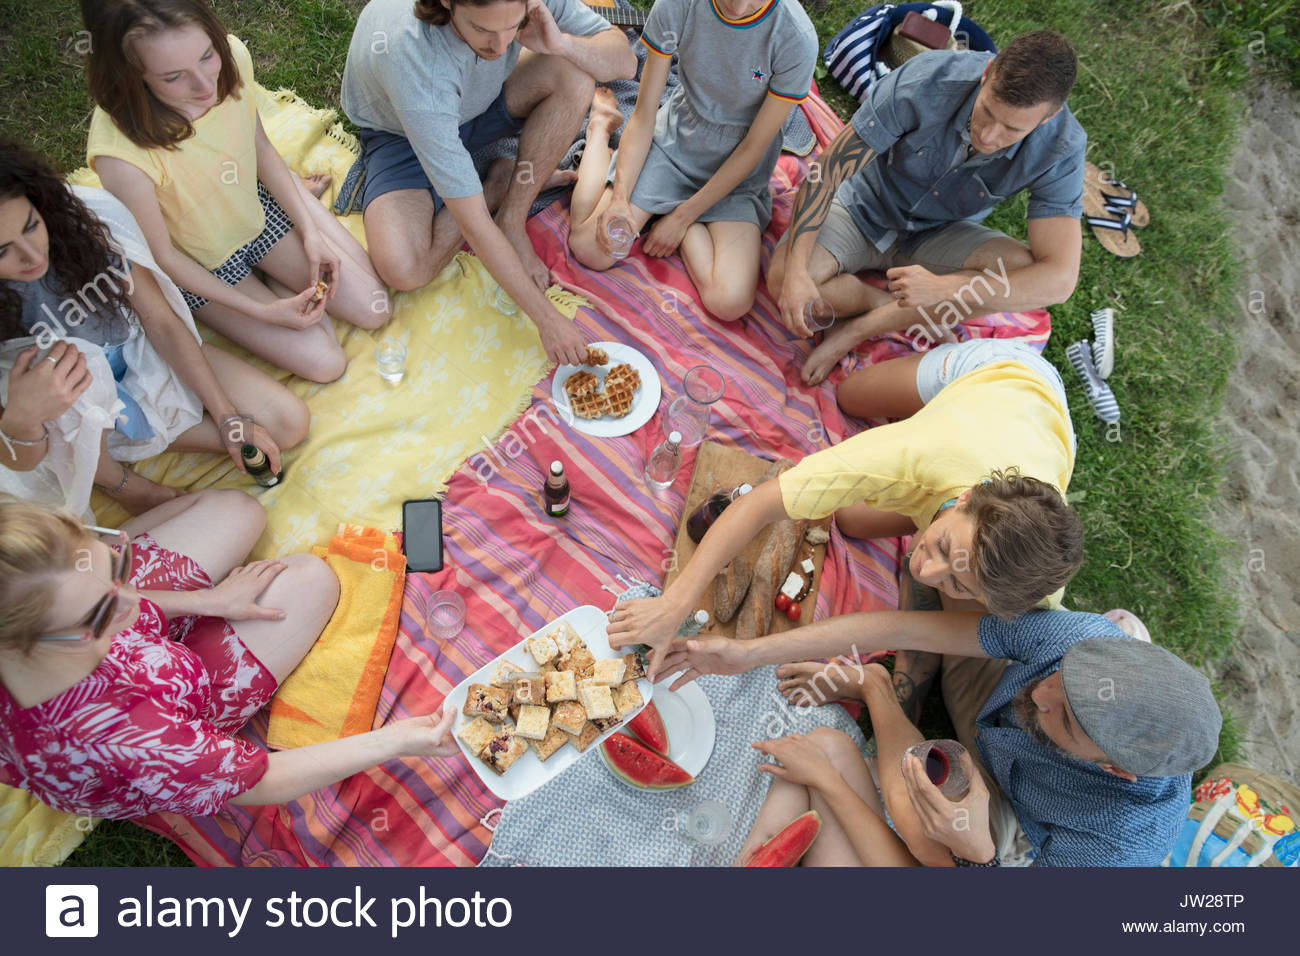 Overhead view friends and family enjoying summer picnic - Stock Image